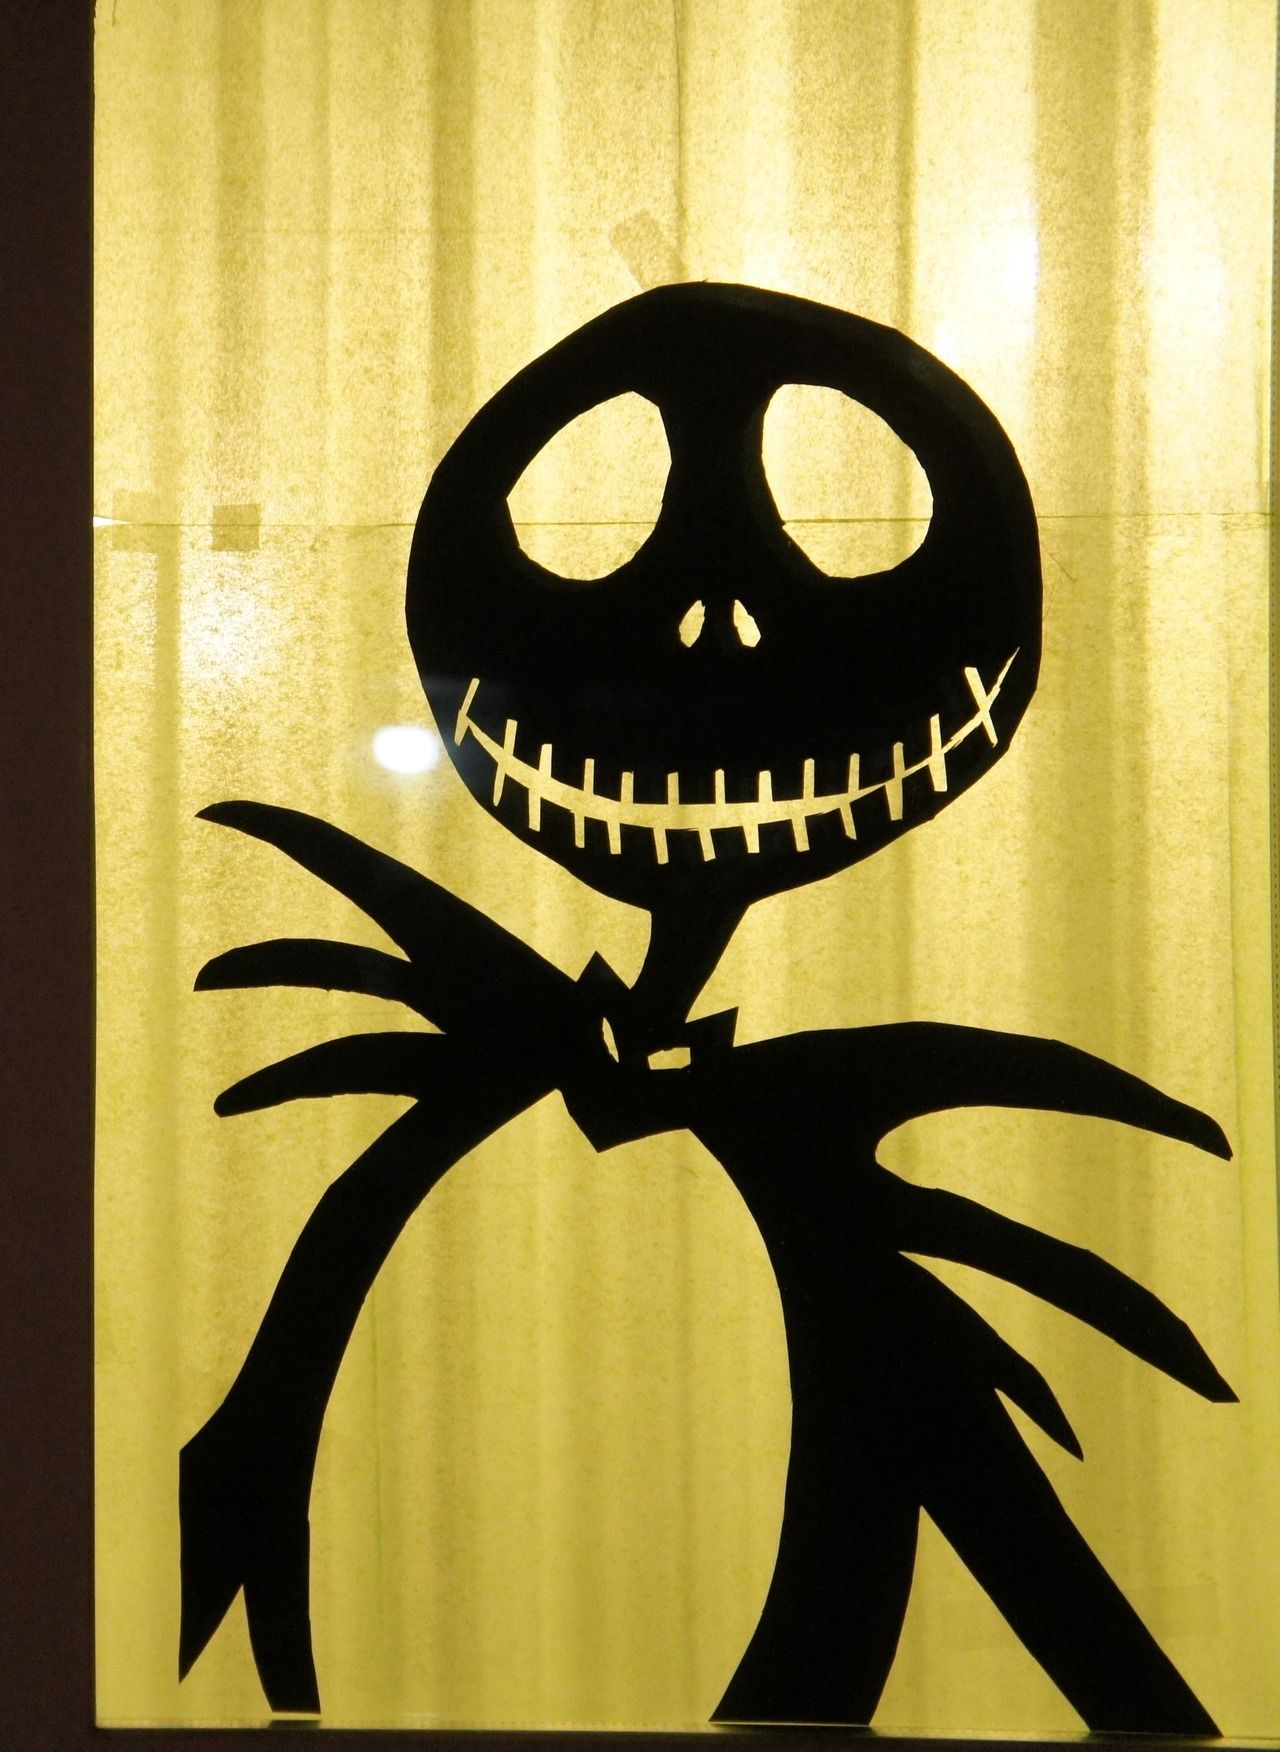 Here is another window decoration I made Jack Skellington - halloween window decor